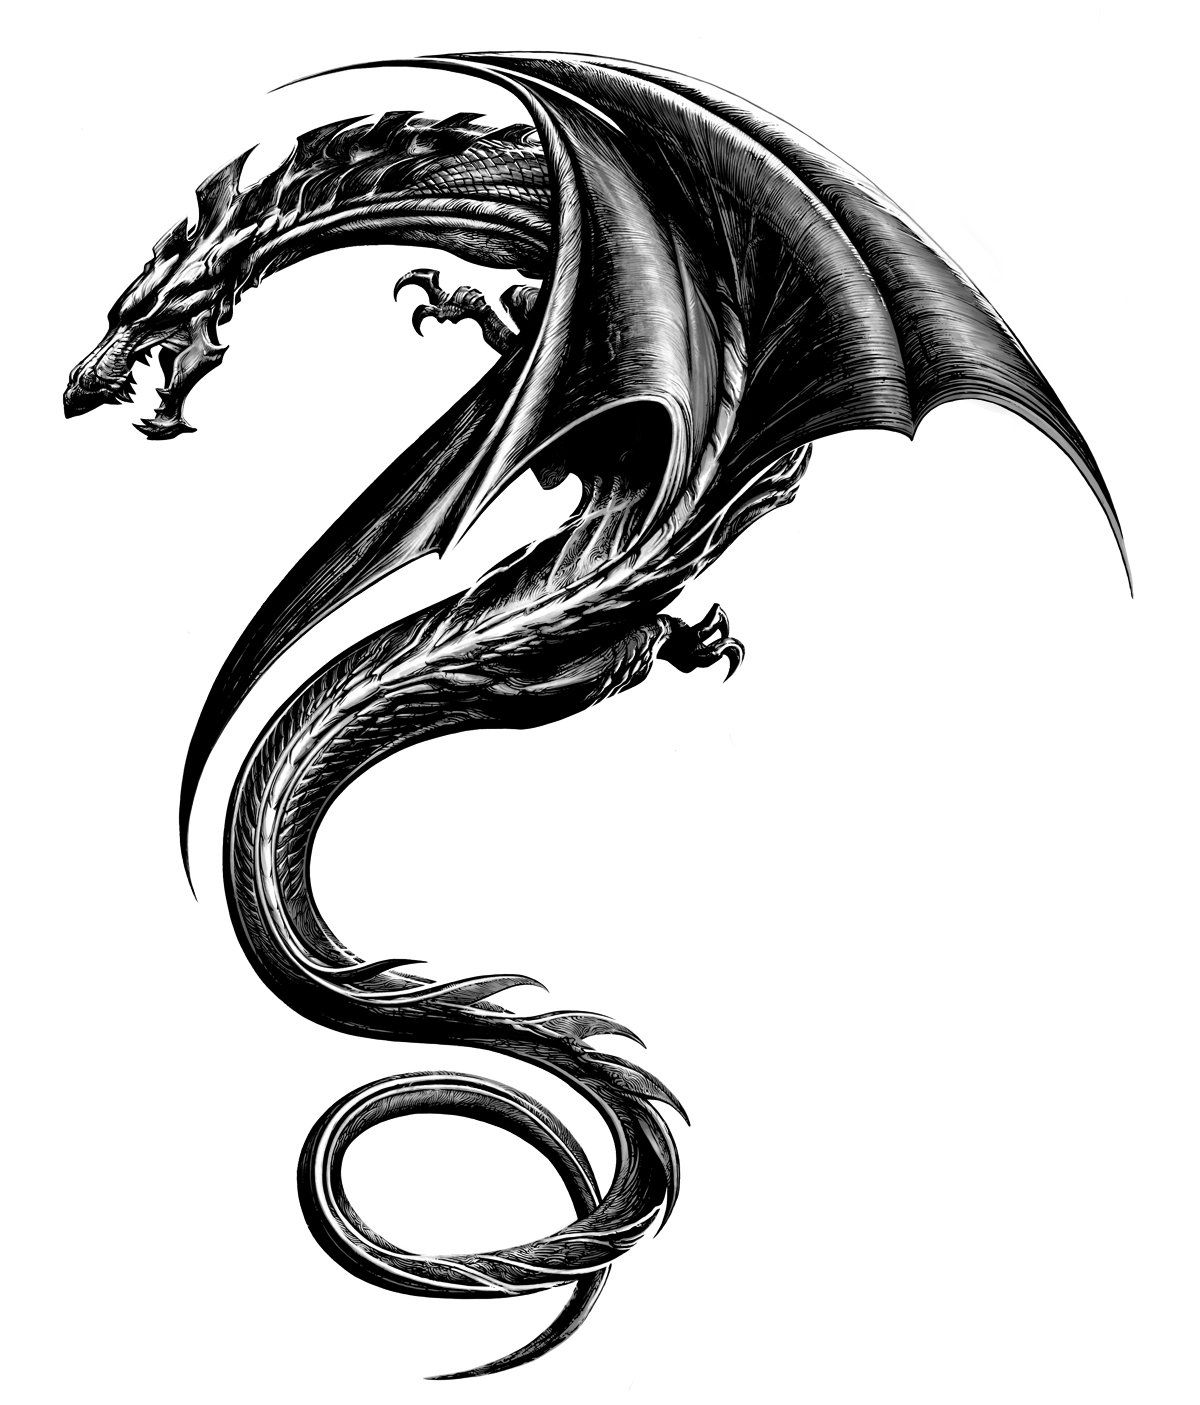 Welsh dragon tattoo designs - 31 Cute Tattoo Ideas For Couples To Bond Together